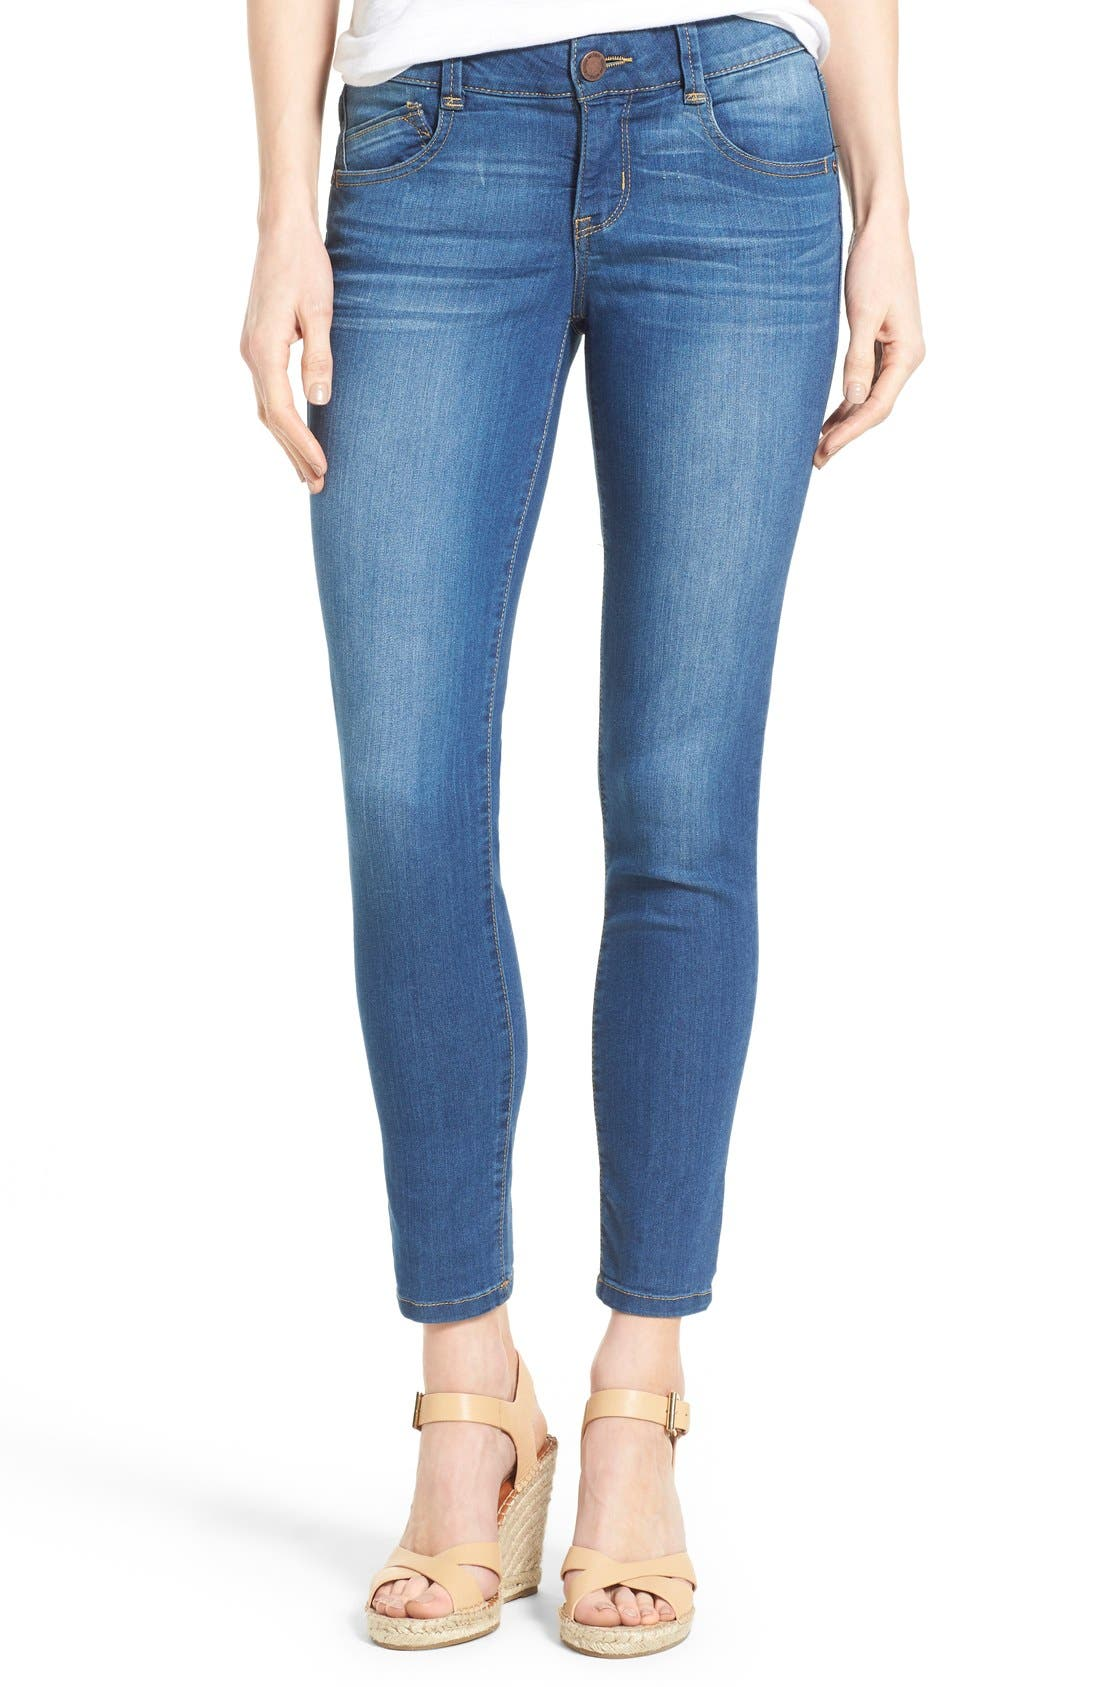 'Ab-solution' Stretch Ankle Skinny Jeans,                             Main thumbnail 1, color,